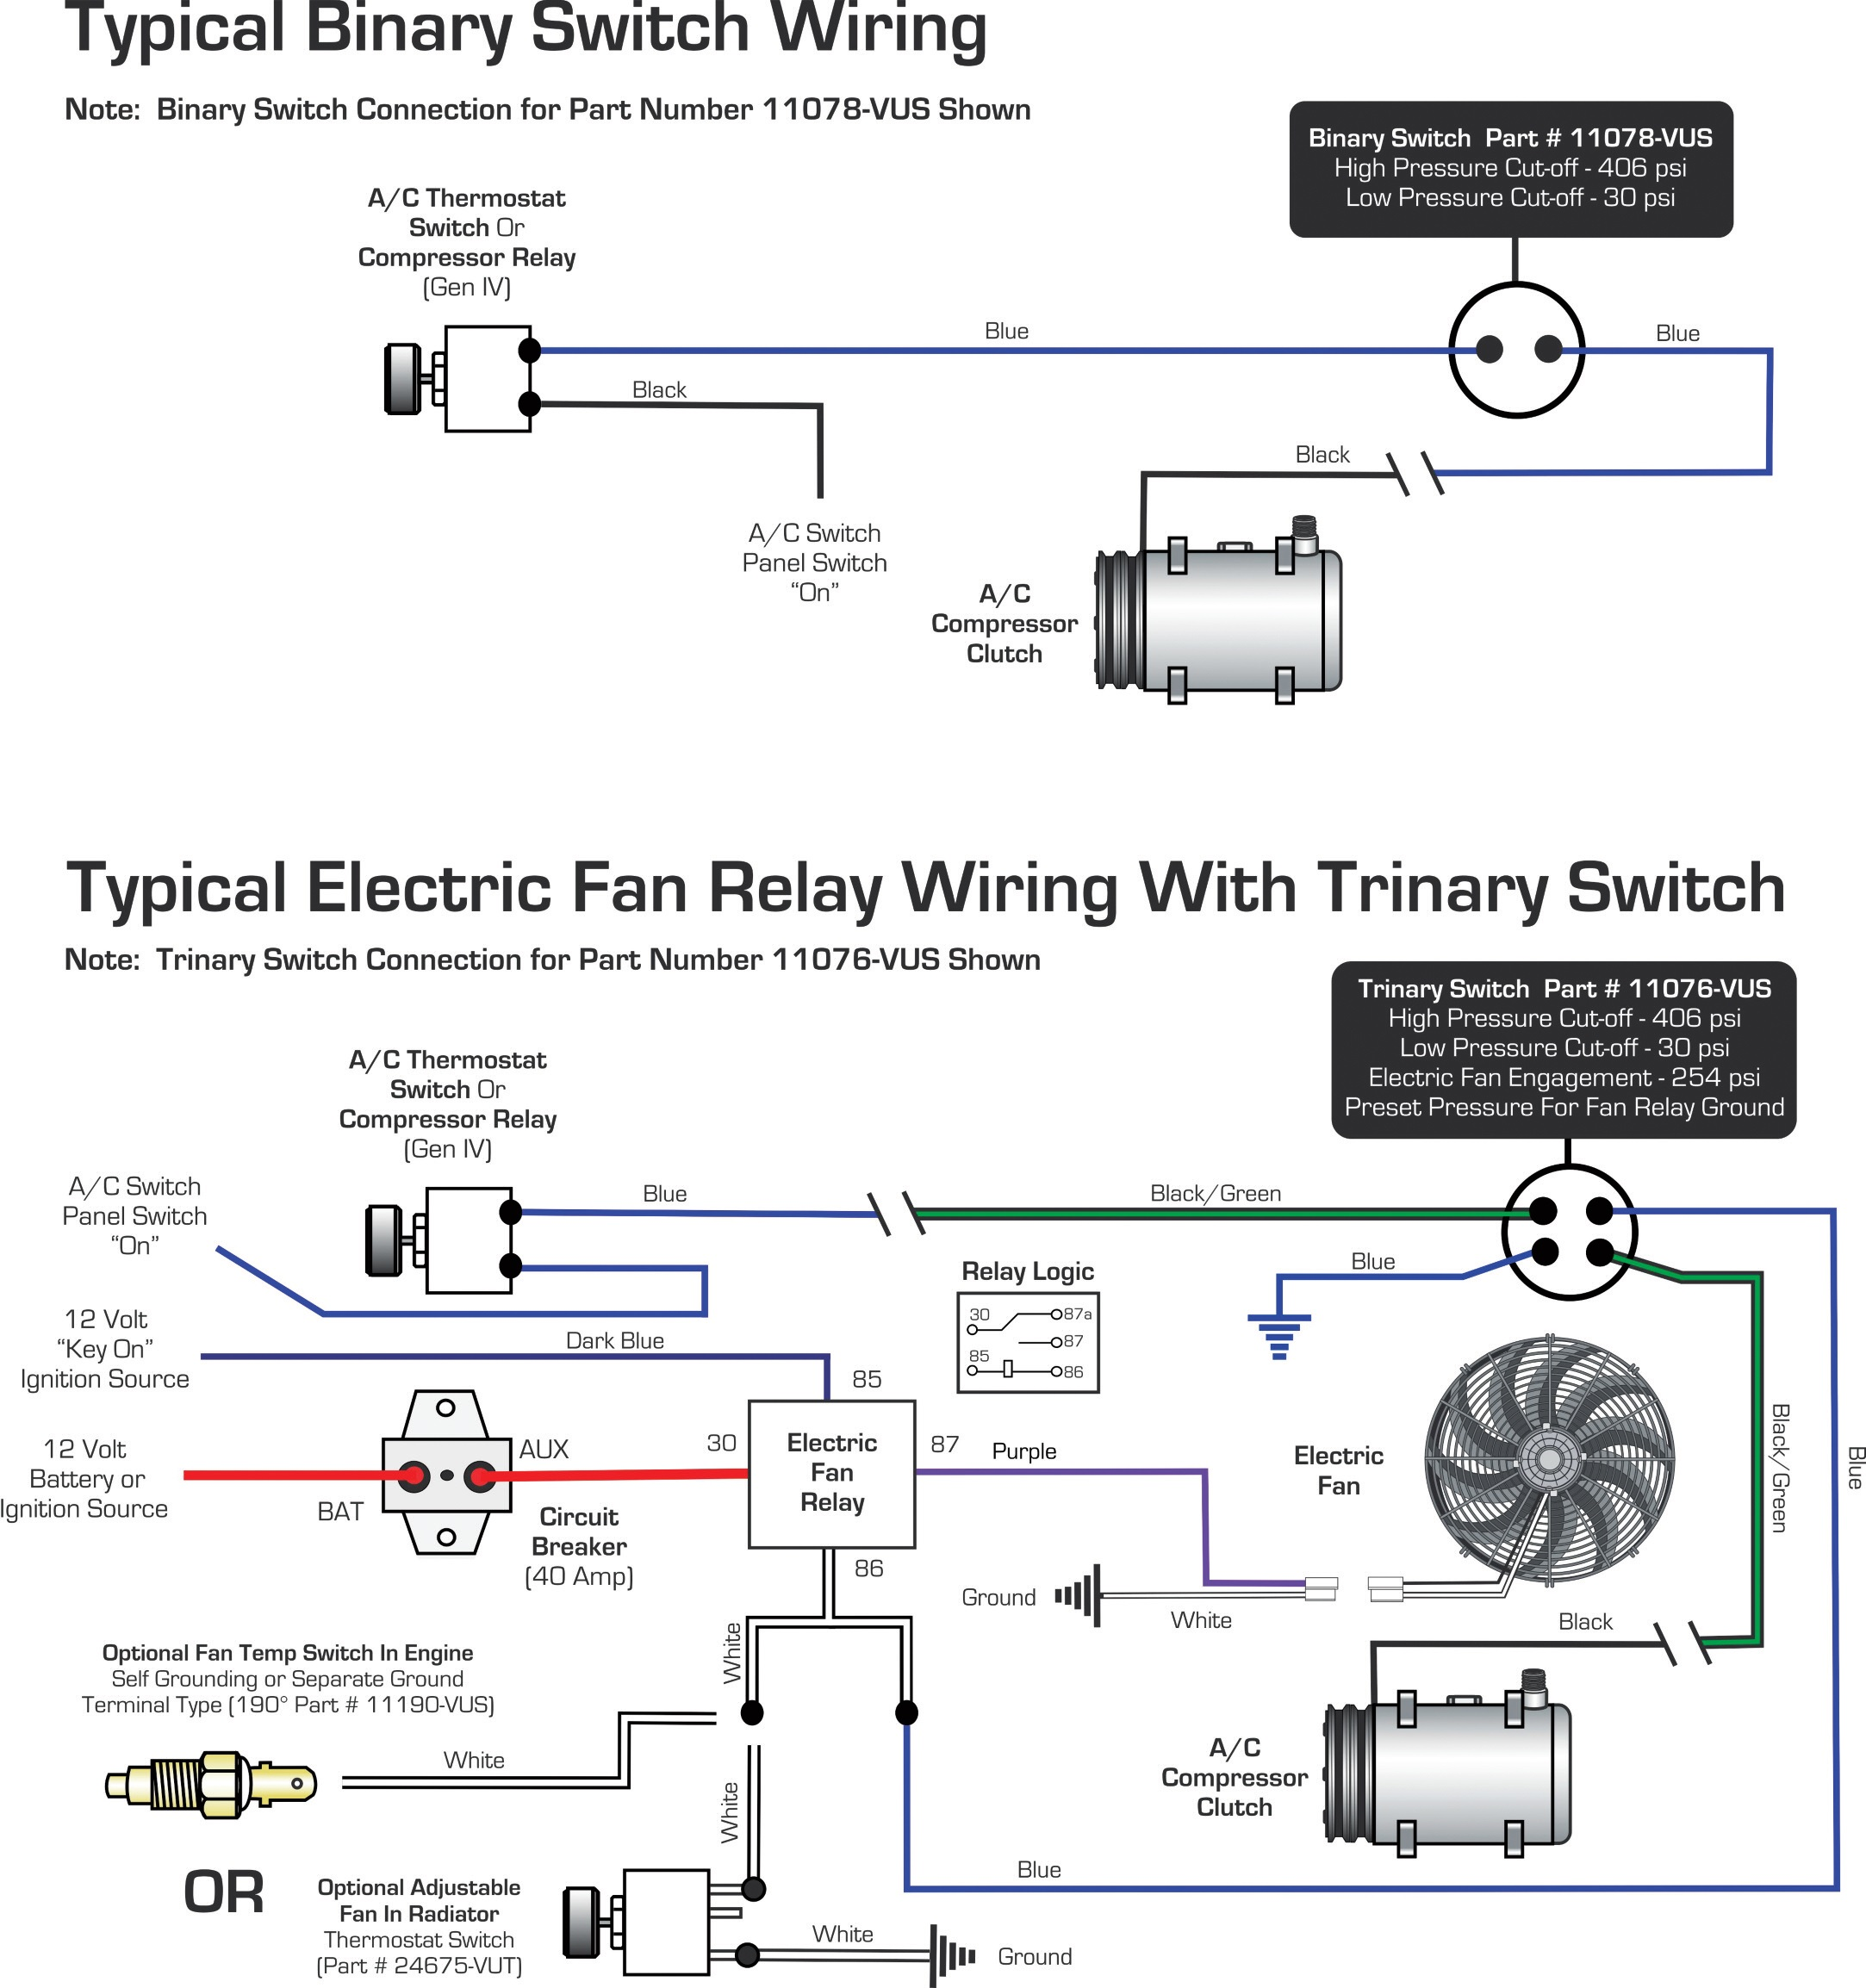 vintage air blog archive wiring diagrams binary switch trinary rh vintageair com vintage air compac gen ii wiring diagram